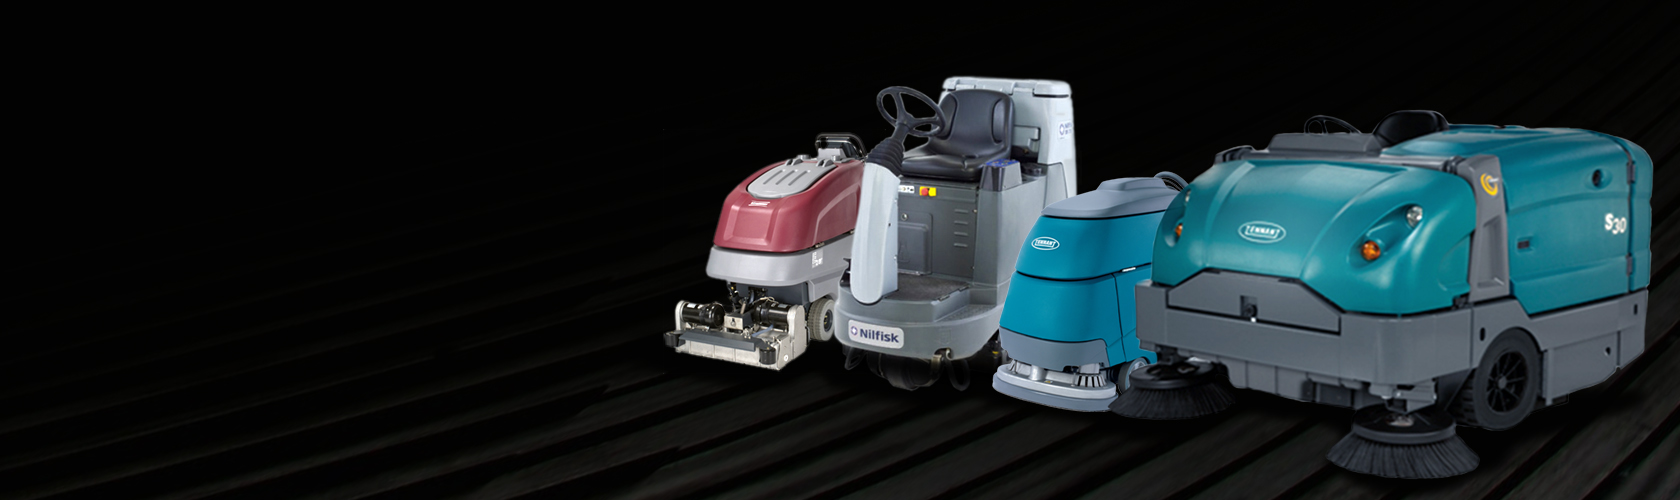 Certified Pre-Owned Sweepers and Scrubbers.